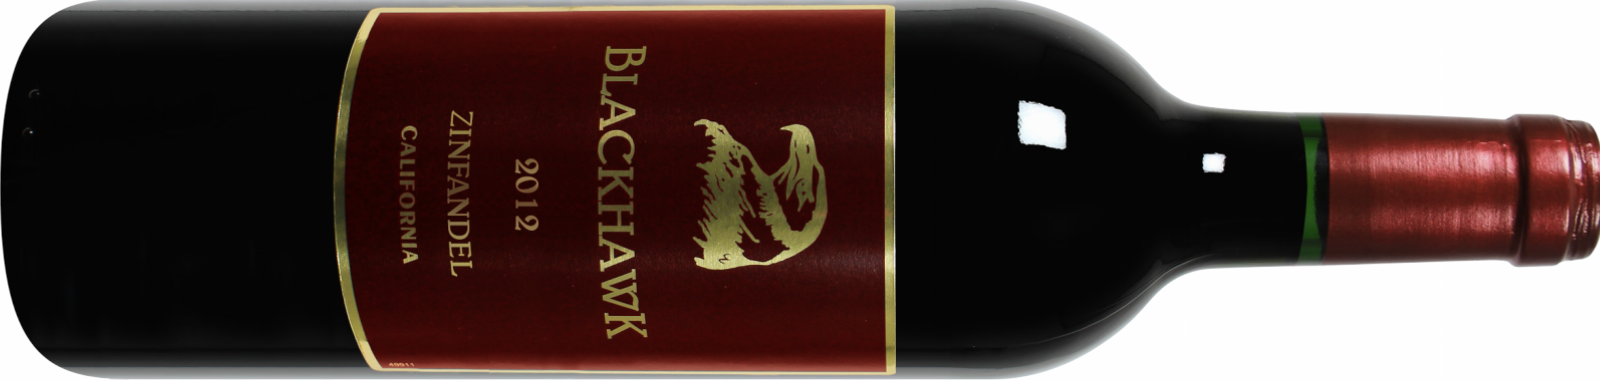 Blackhawk Zinfandel Central Valley 2013